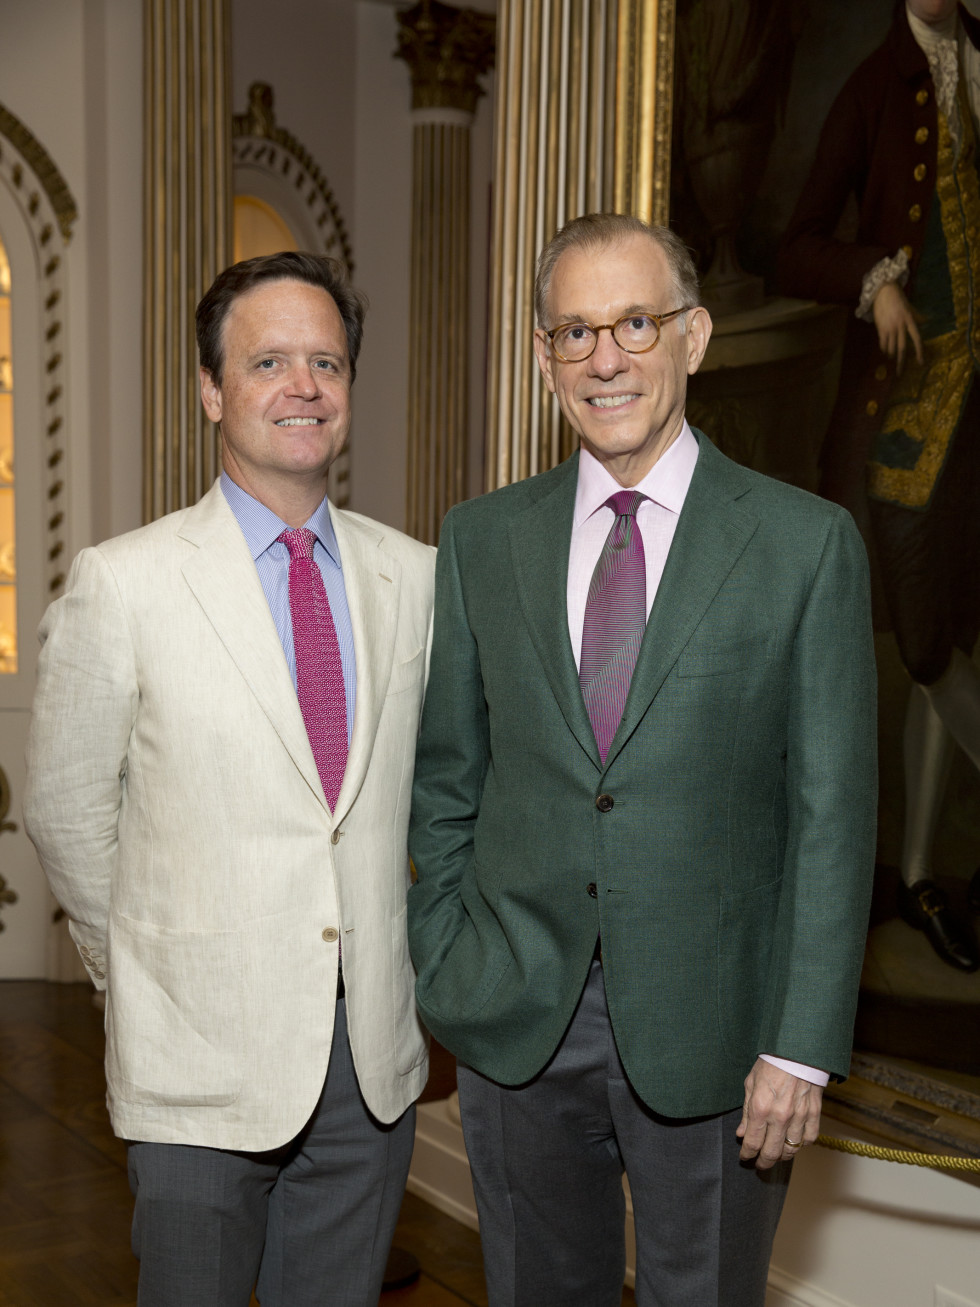 Rienzi Spring Party, 5/16 Christopher Gardener, Gary Tinterow